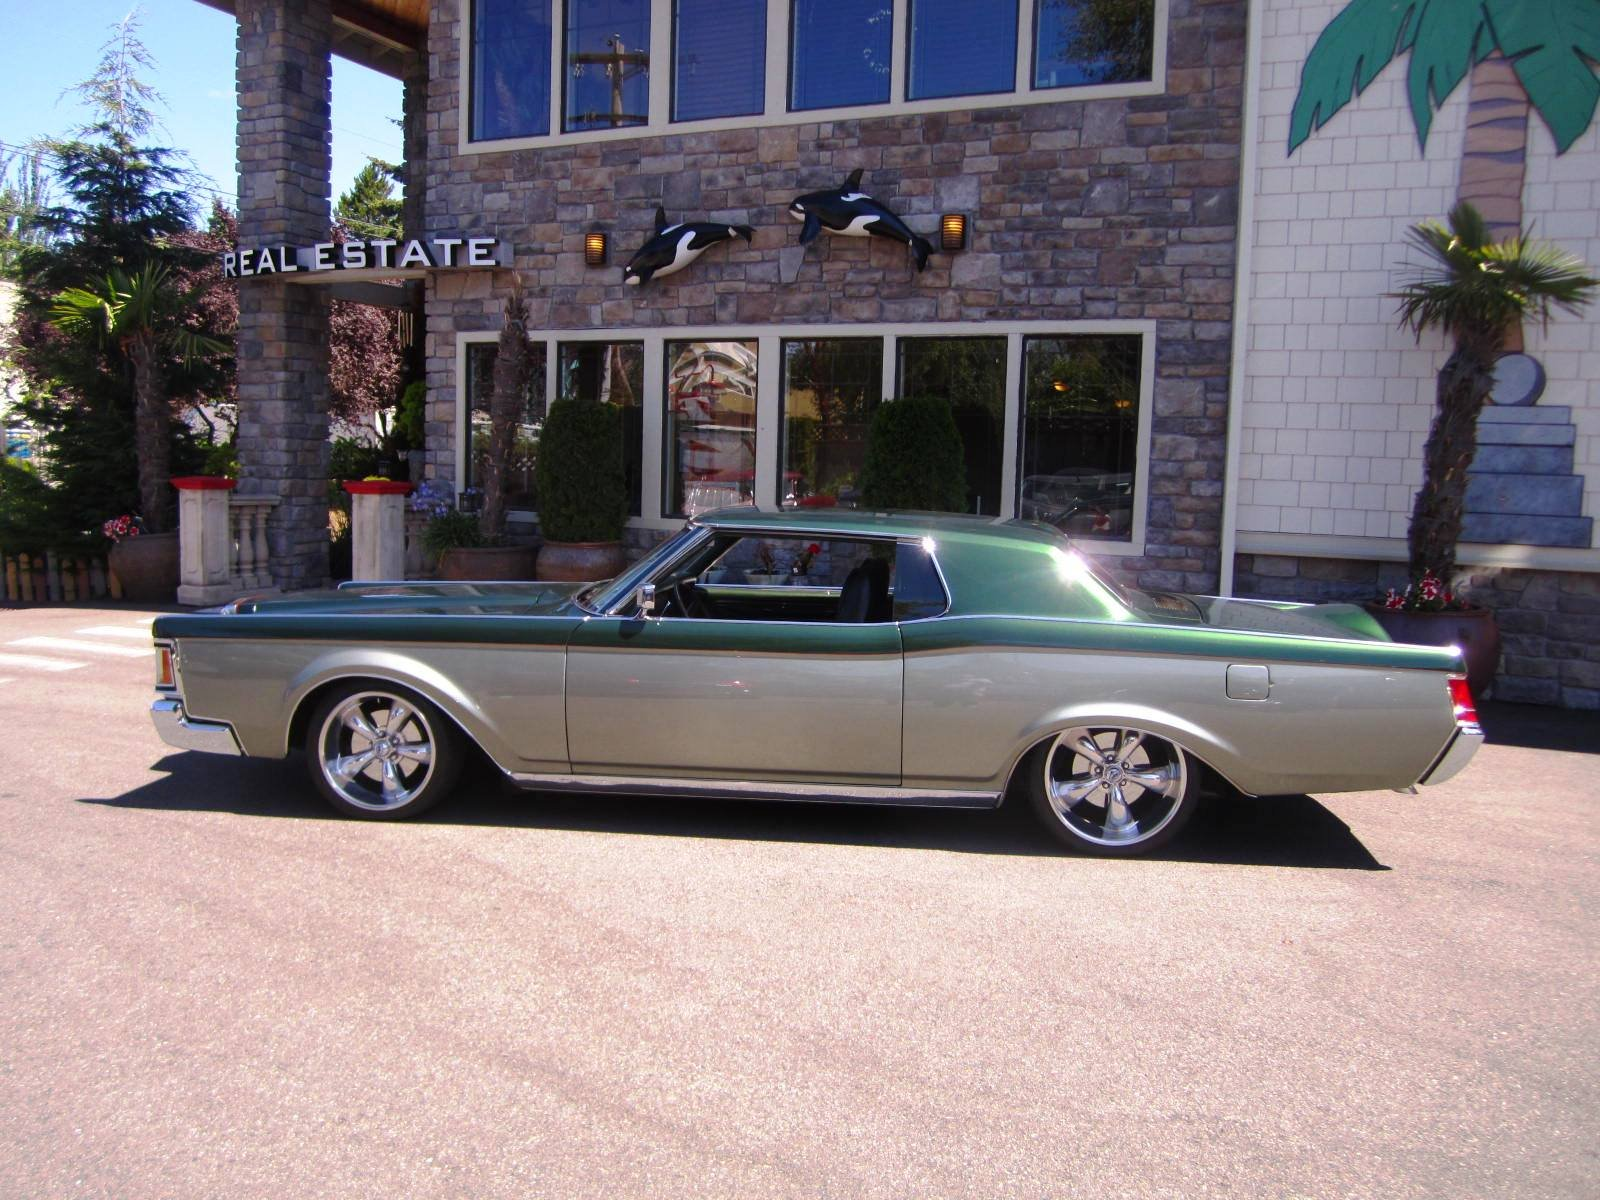 A Lowered Shaved 71 Lincoln Mark Iii With Two Tone Body Go Ahead